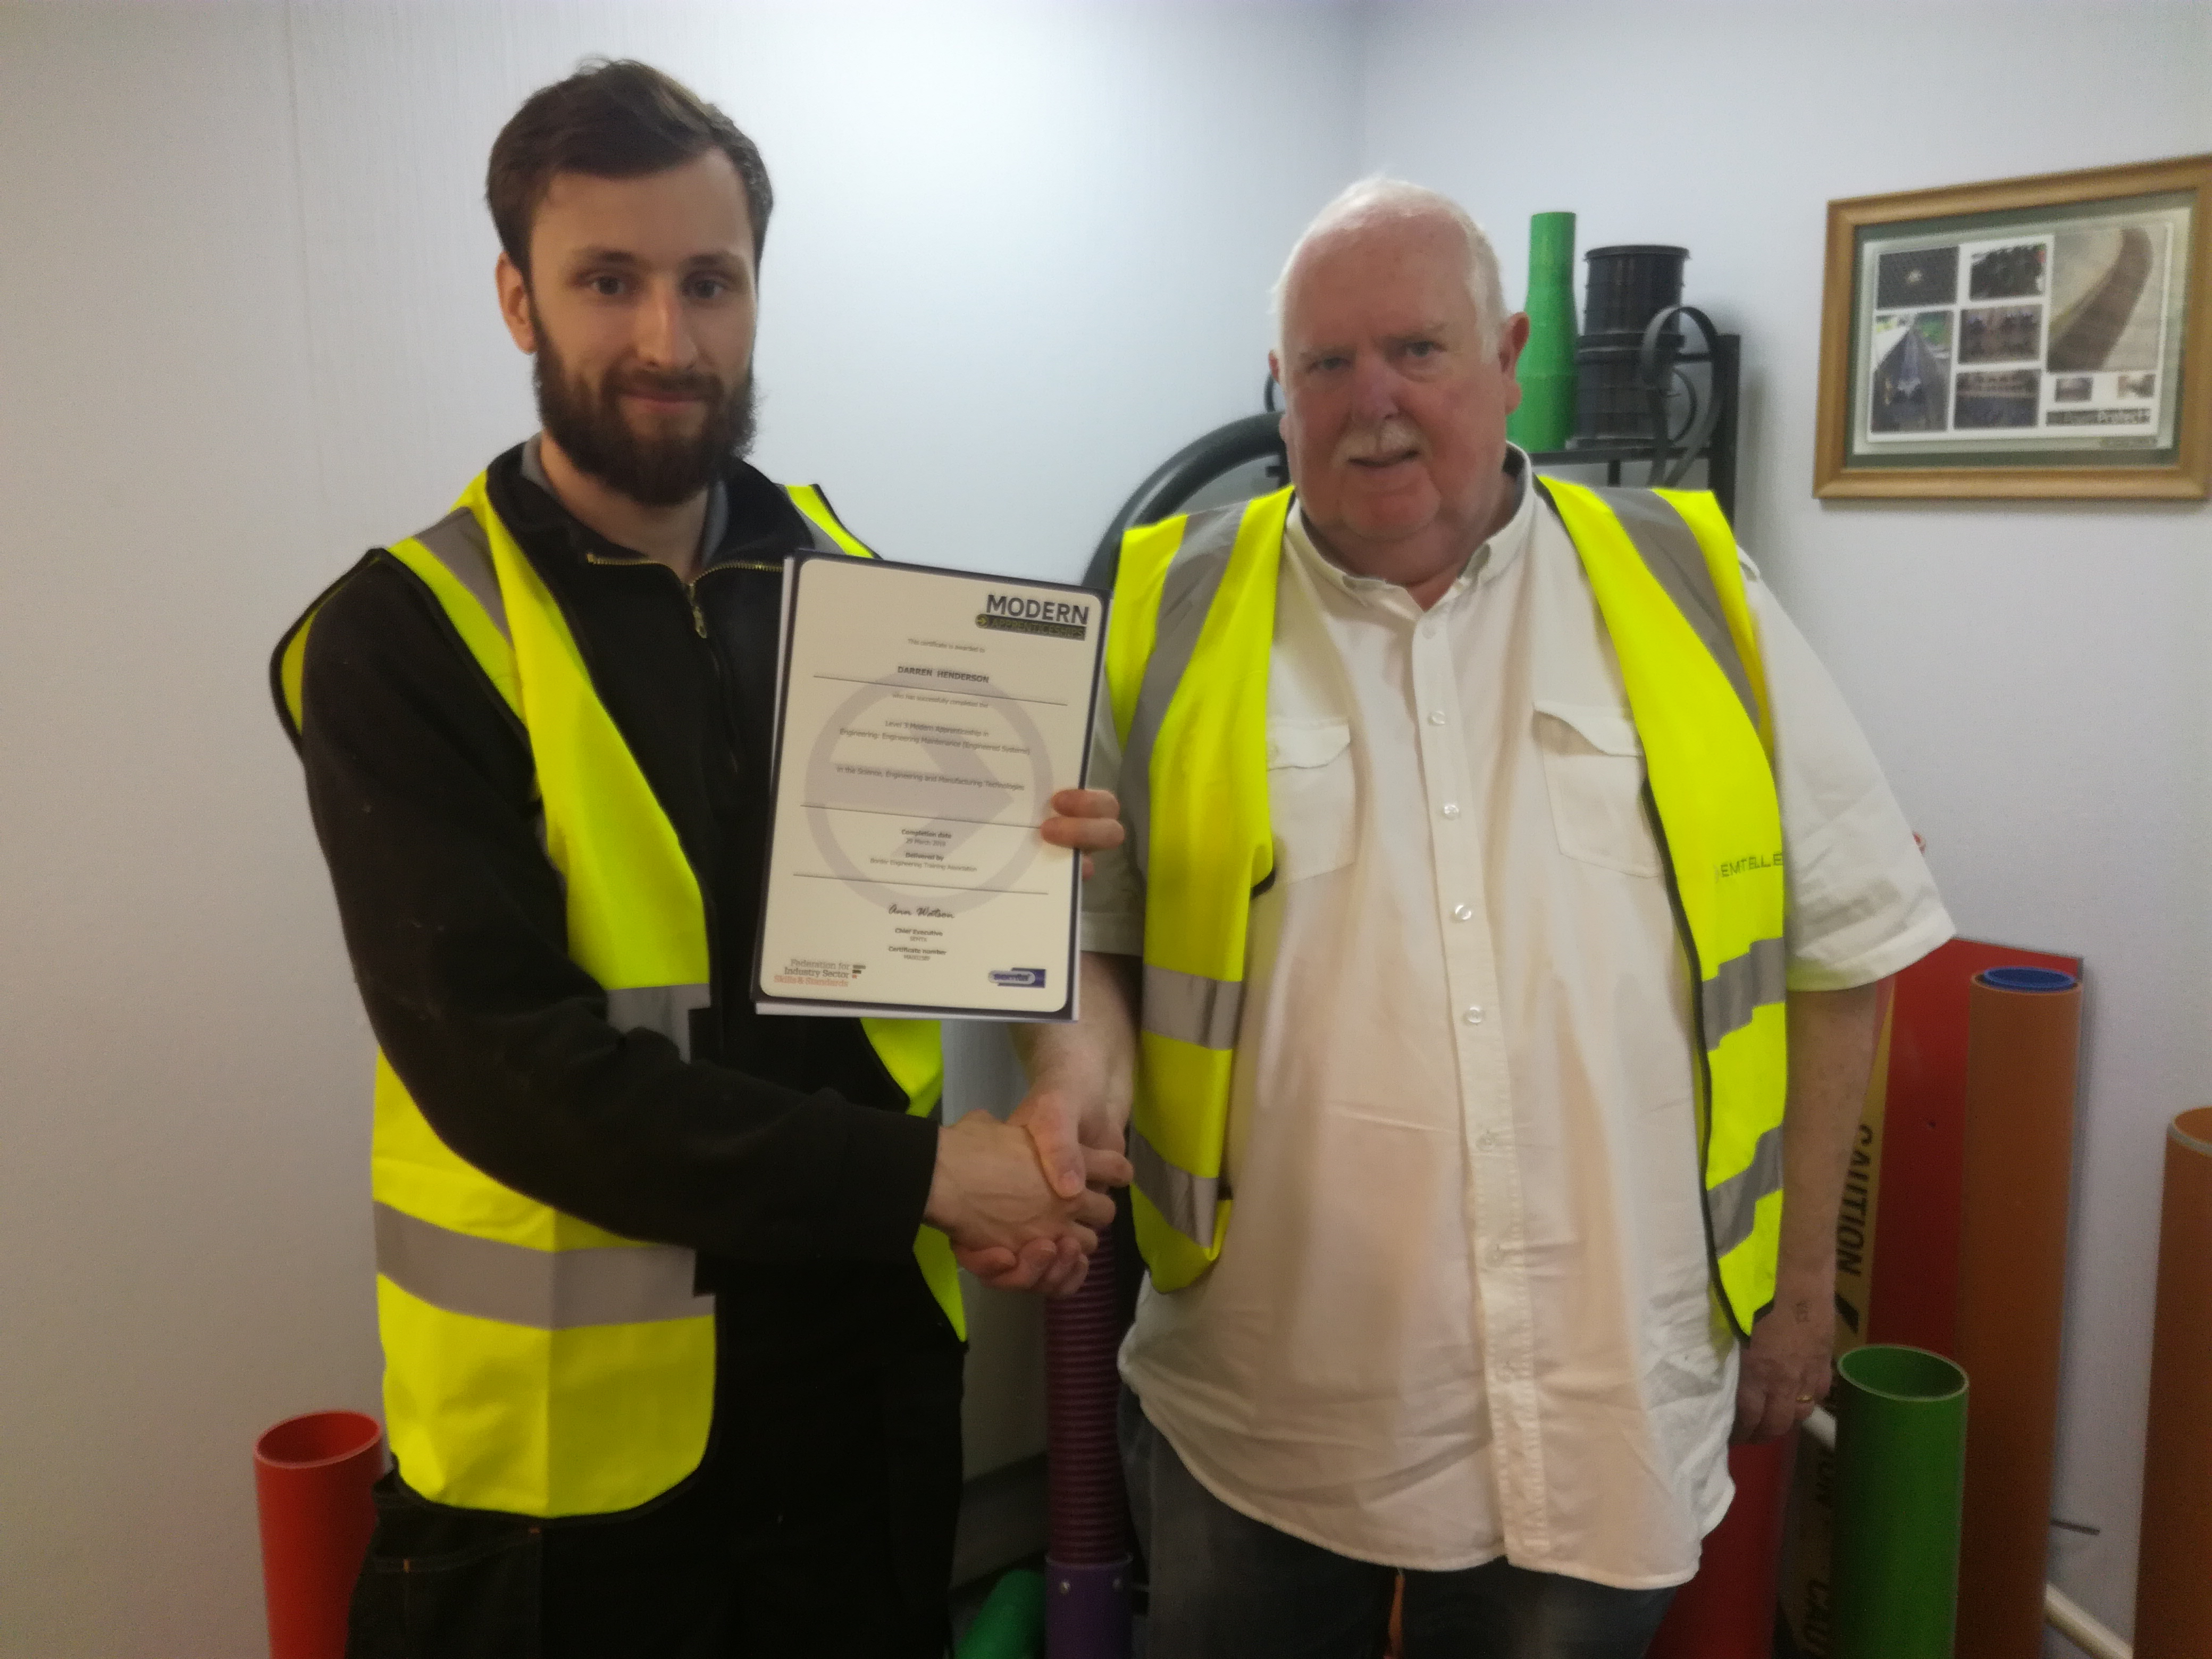 Stuart CAmpbell with his MA Certificate